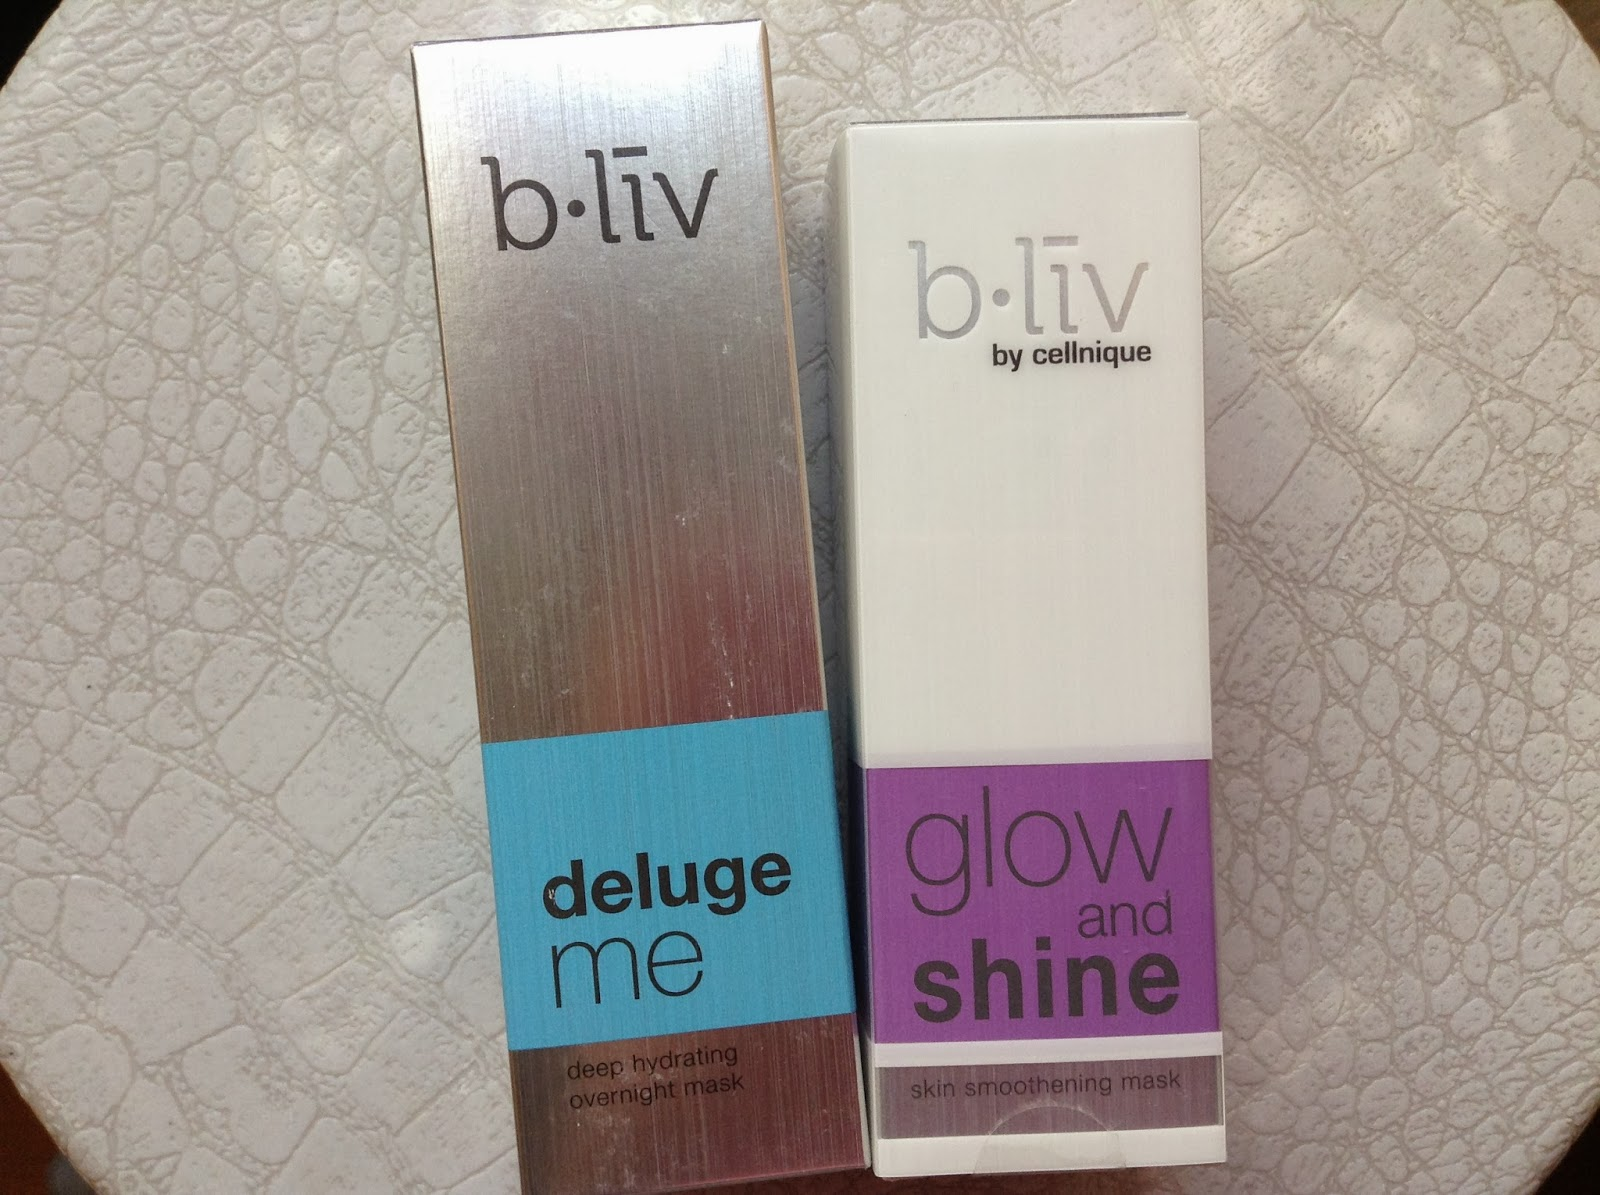 >> 保養系列必備去角質補水面膜*信美肌 b.liv by cellnique Glow and Shine & Deluge Me面膜